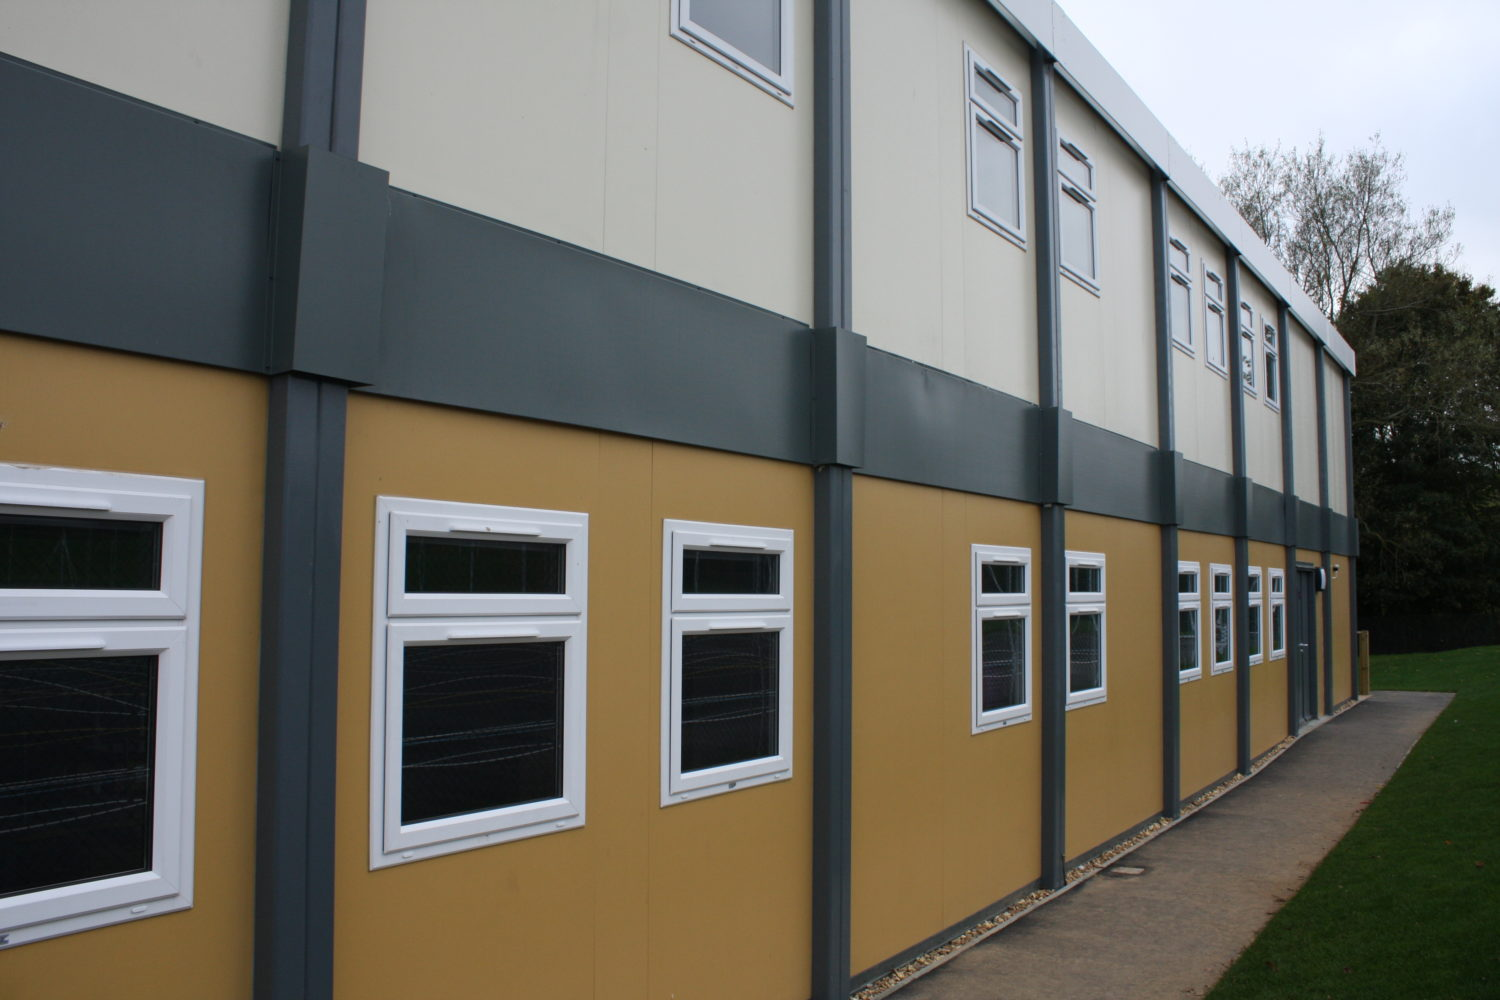 outside view of two storey modular building